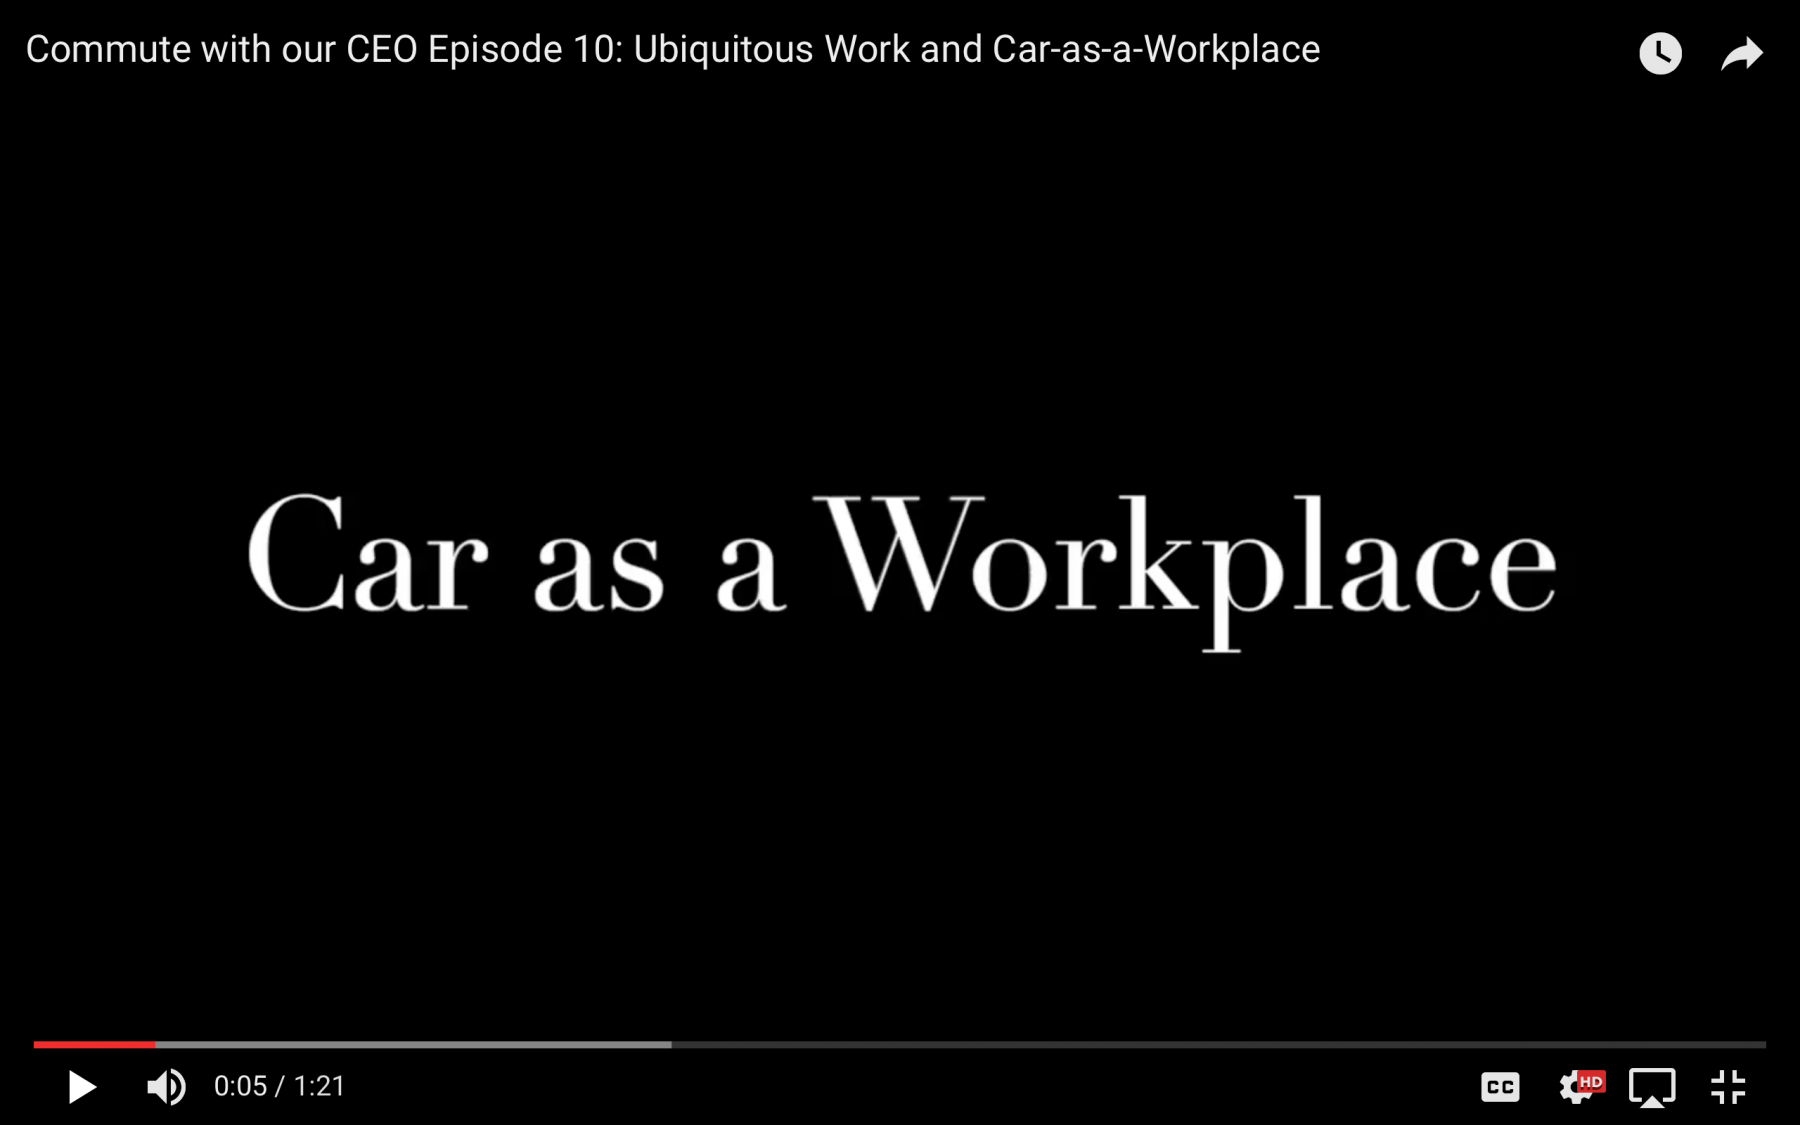 image of episode title - car as a workplace